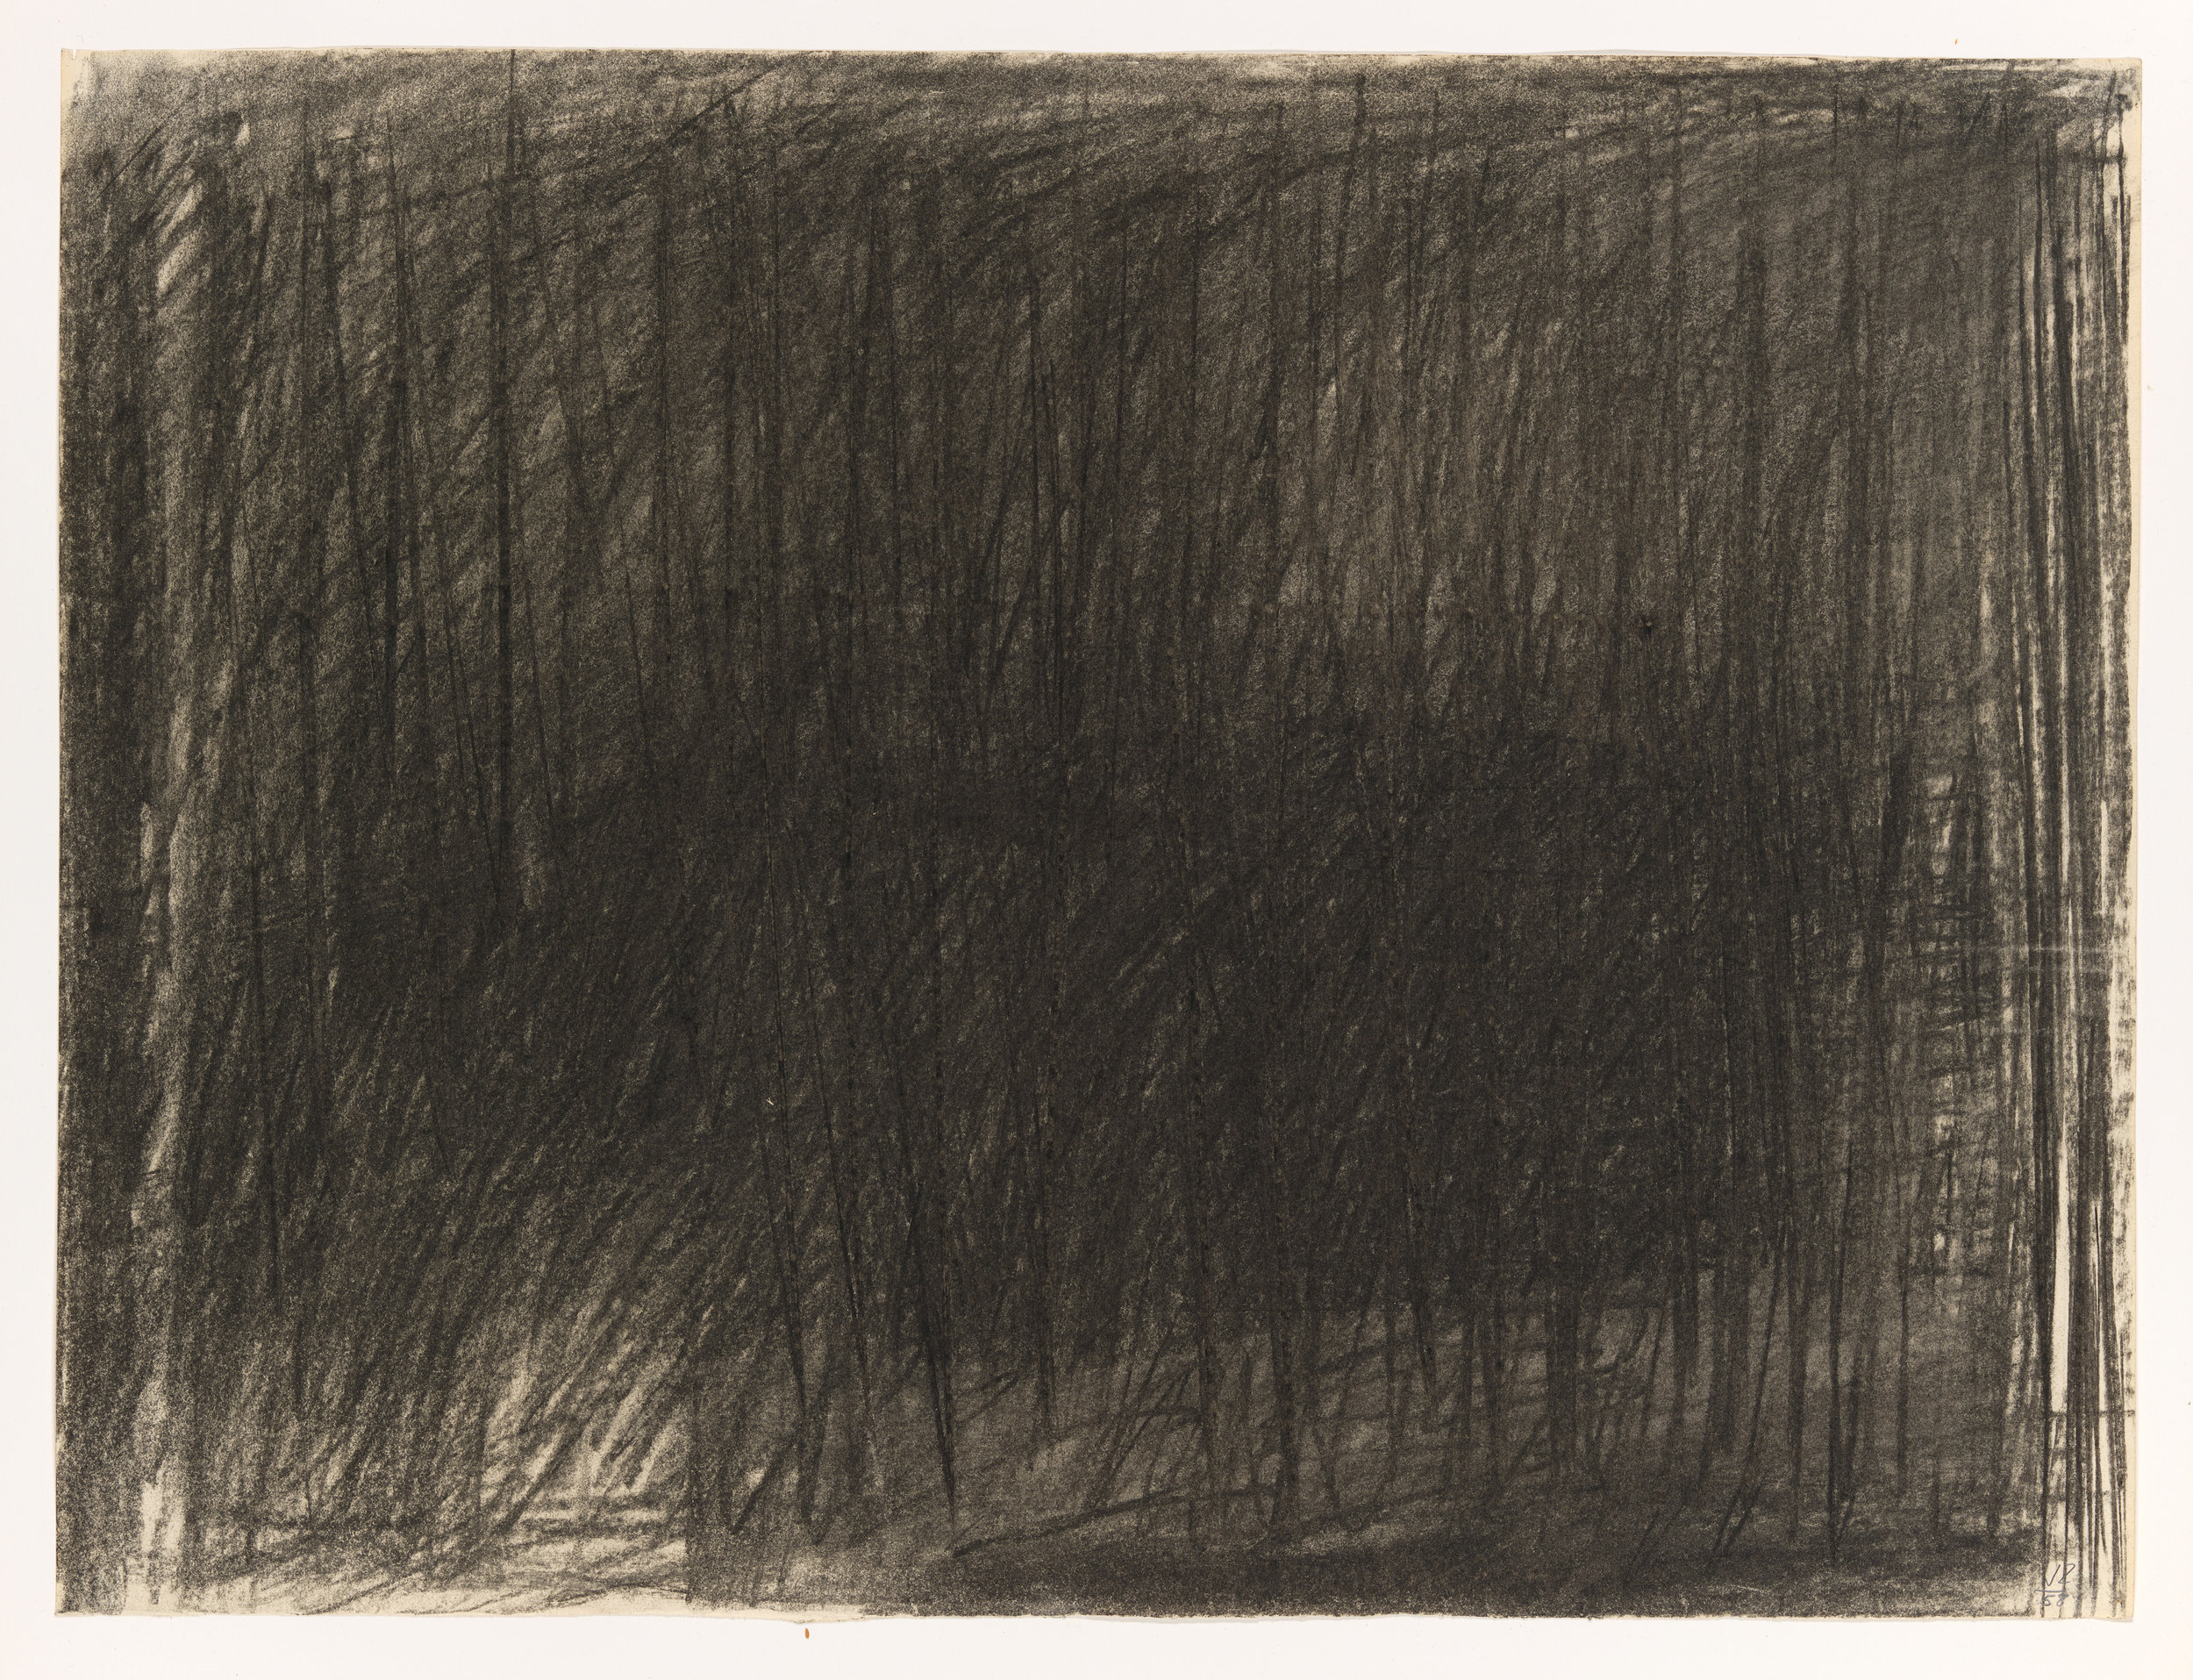 """Jack Tworkov (1900-1982)  Study for """"Trace""""  (CR999), 1958, Charcoal on paper, 18 1/16 x 24 1/16 in. (45.9 x 61.1 cm) (CR 999) Collection of the Whitney Museum of American Art, New York. Purchase, with funds from the 1960-61 Friends Acquisitions Committee (61.19)"""